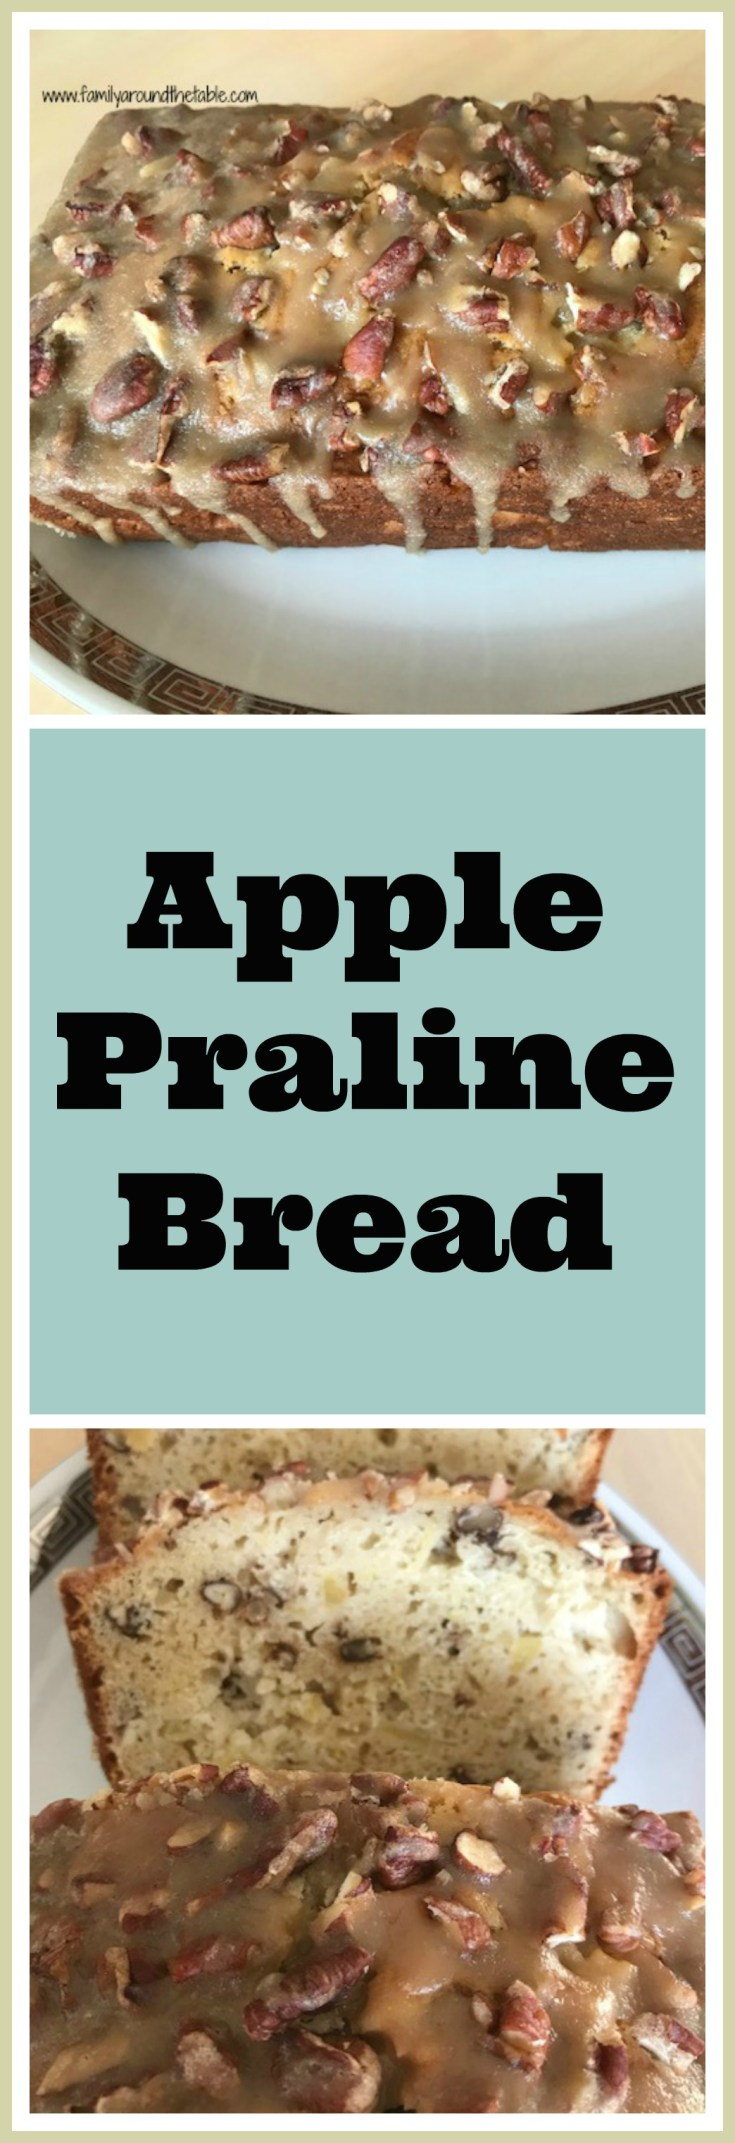 Start your day with a cup of coffee and a slice of apple praline bread.